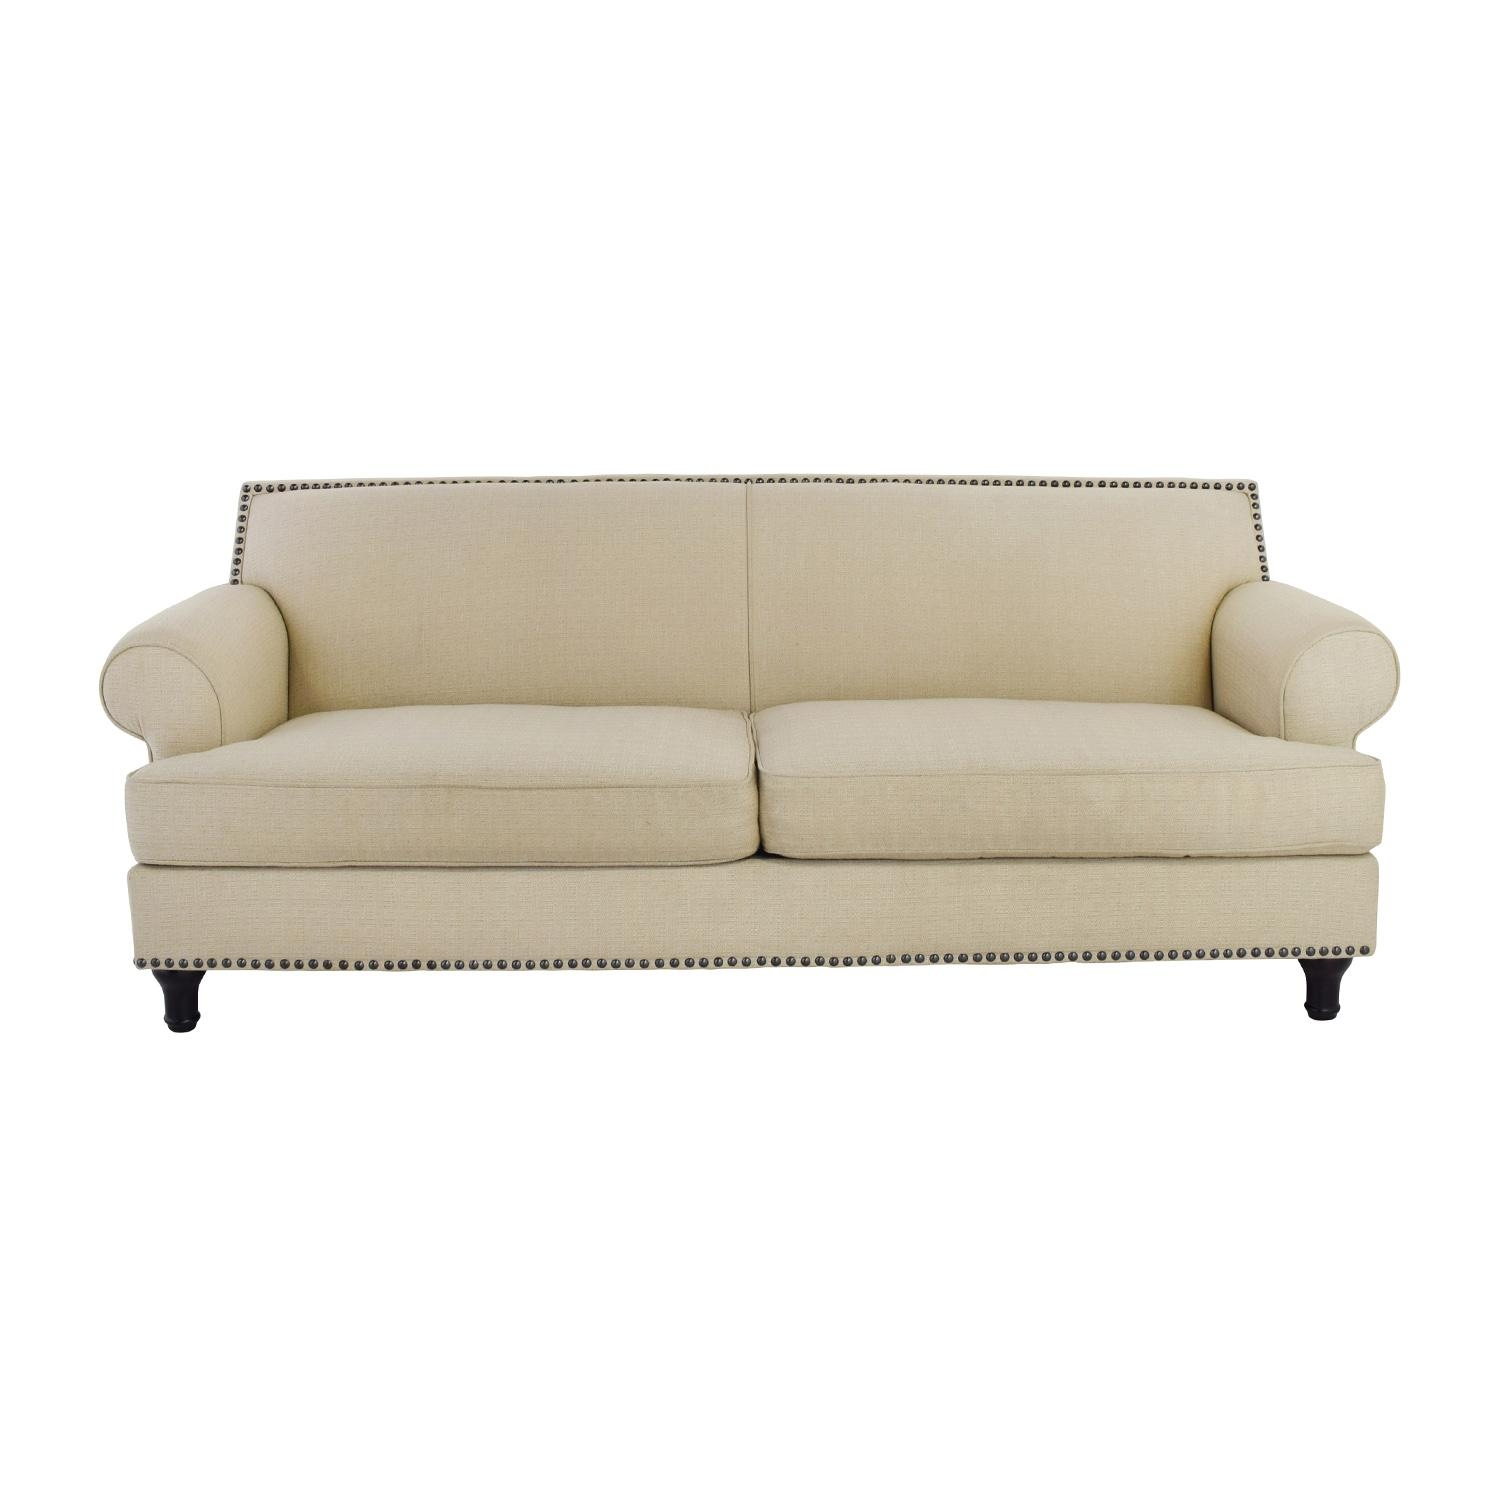 48% Off - Pier 1 Pier 1 Carmen Tan Couch With Studs / Sofas within Pier One Carmen Sofas